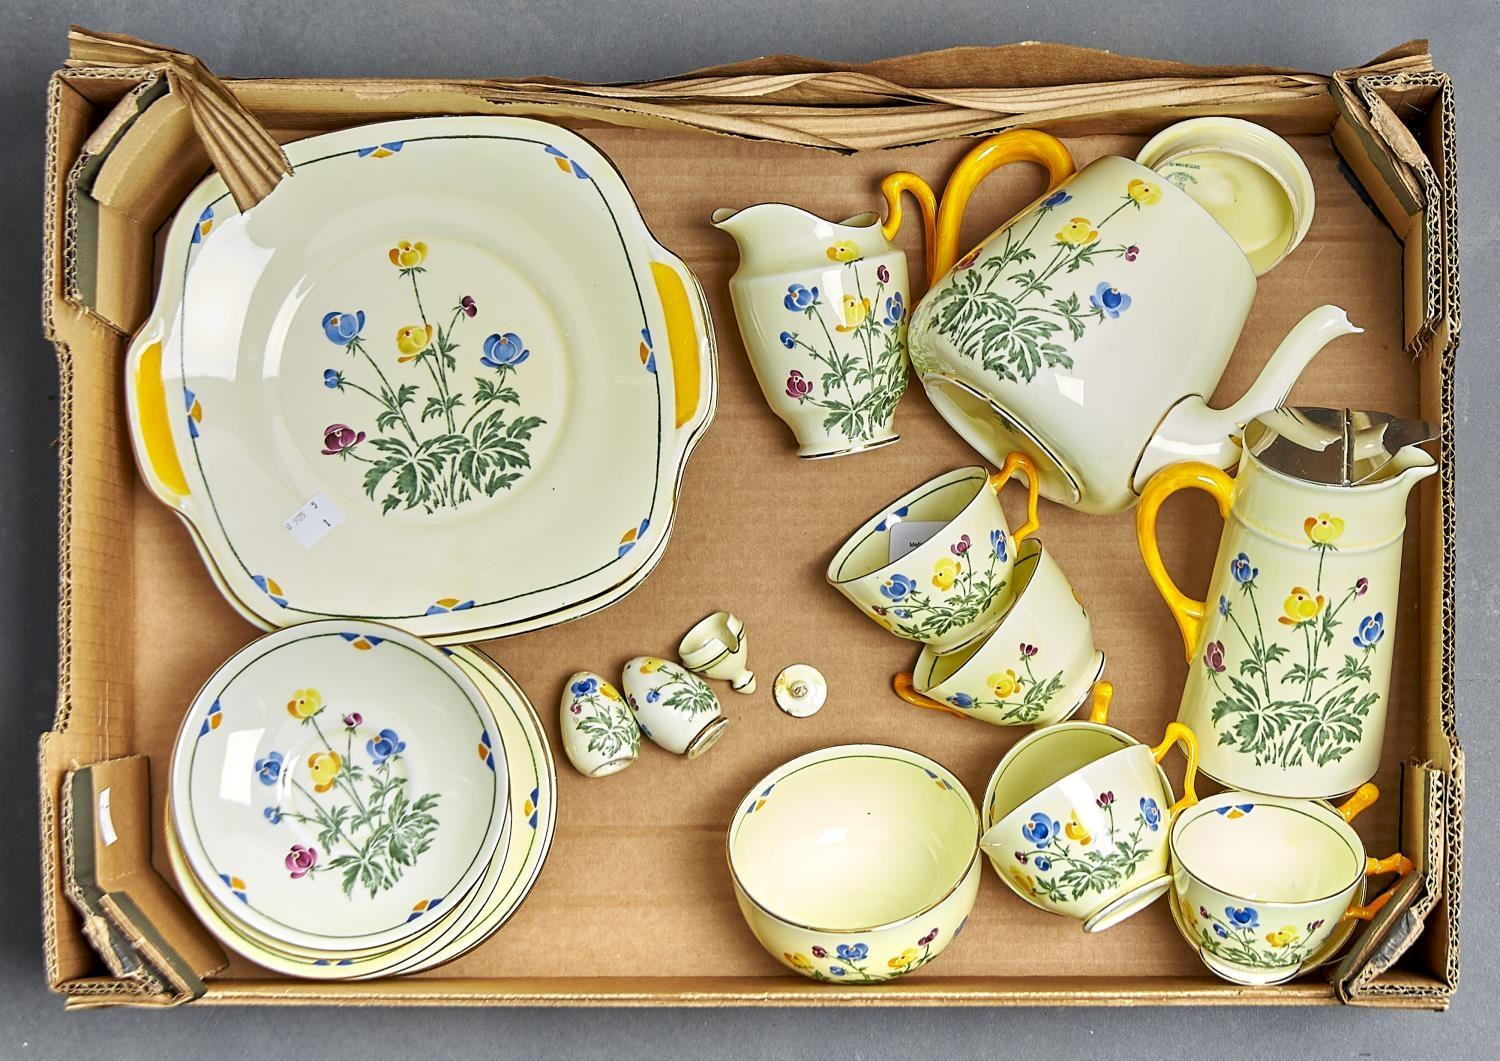 A CROWN STAFFORDSHIRE TEA SERVICE FOR SIX, COMPRISING SIX CUPS AND SAUCERS, SIX SIDE PLATES, SIX